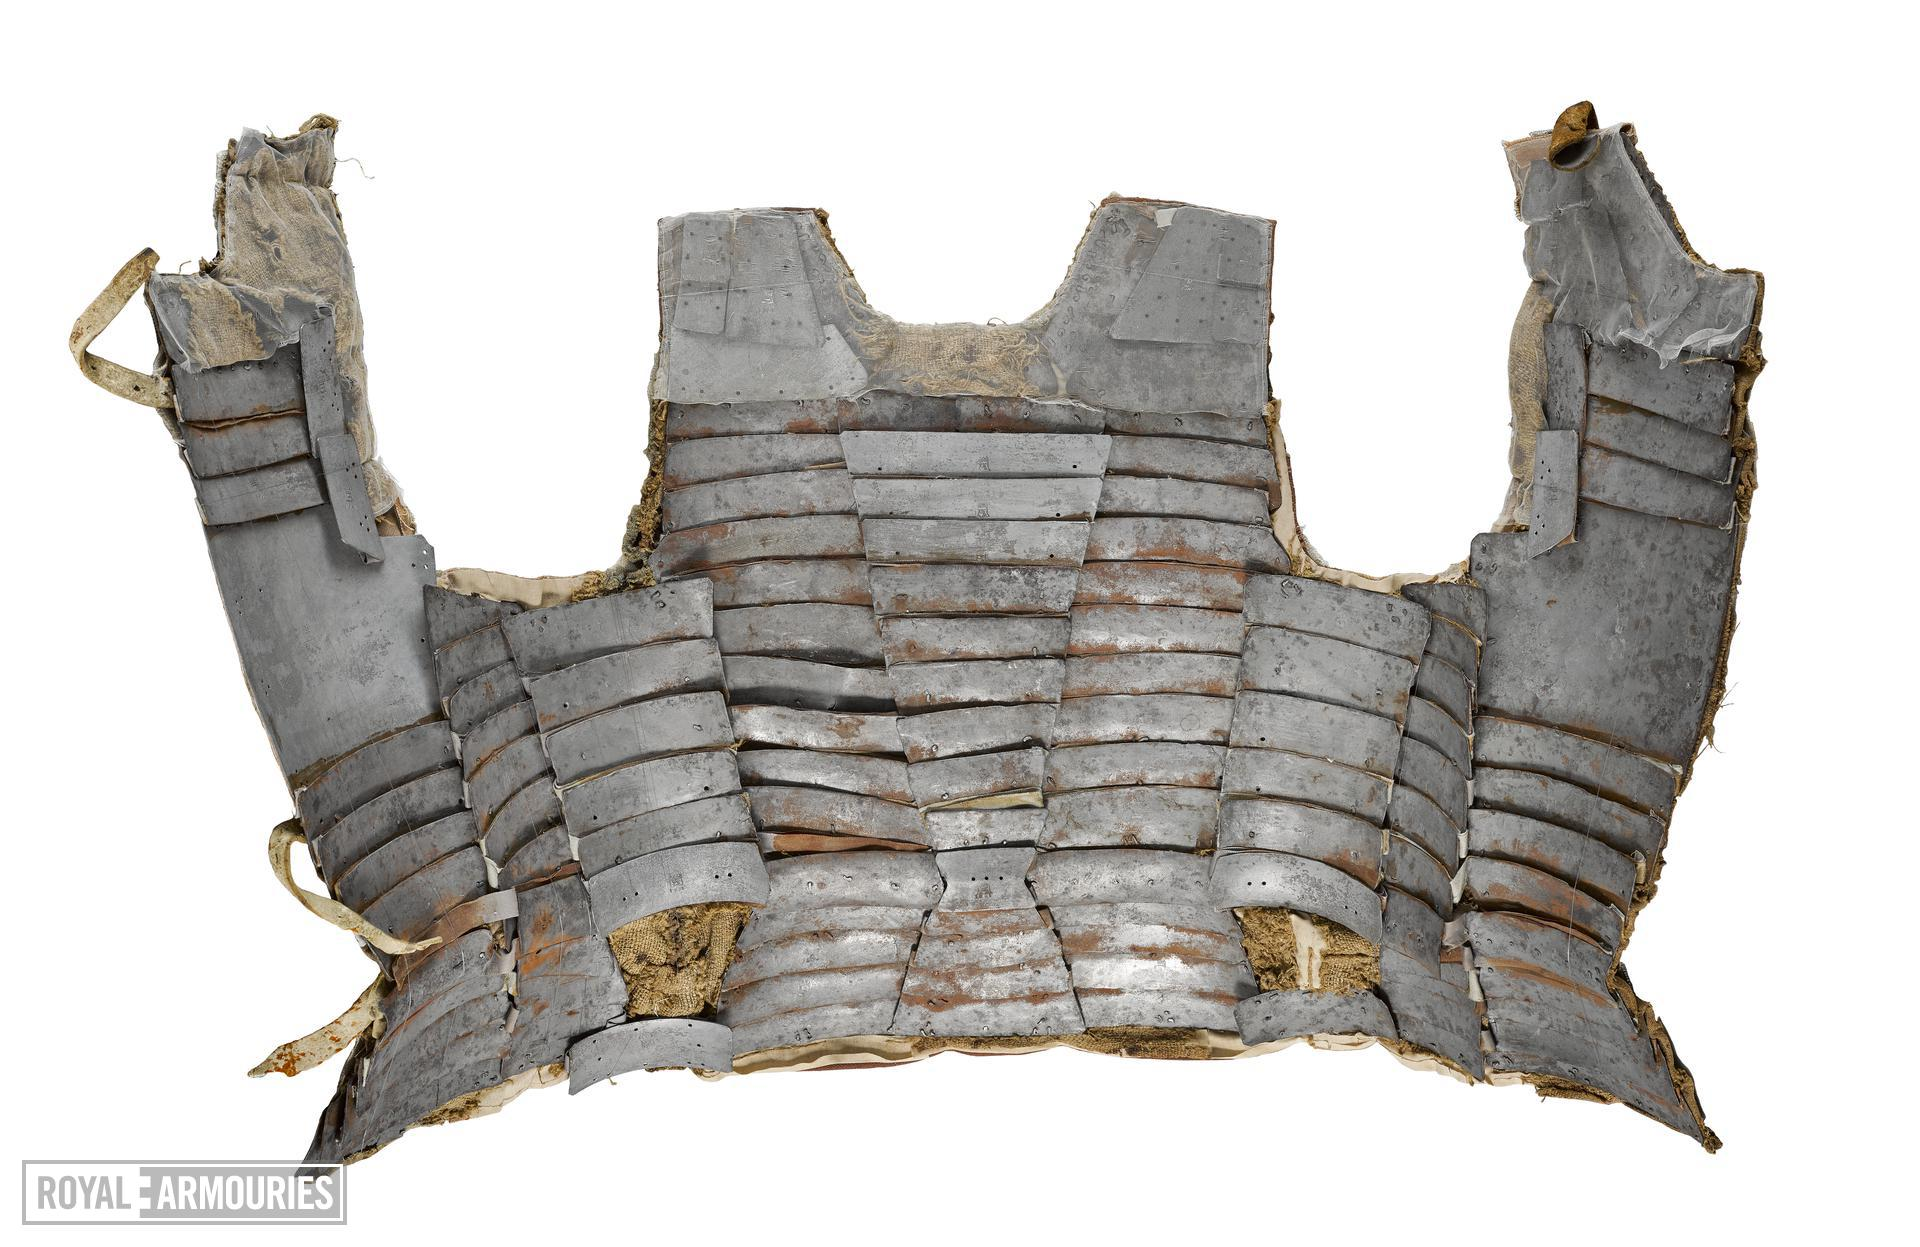 Brigandine (1470), Italy. This rare brigandine protected the torso and comprised numerous, overlapping small plates riveted to an outside textile covering. Relatively light and flexible, it became popular amongst foot soldiers during the 15th century.